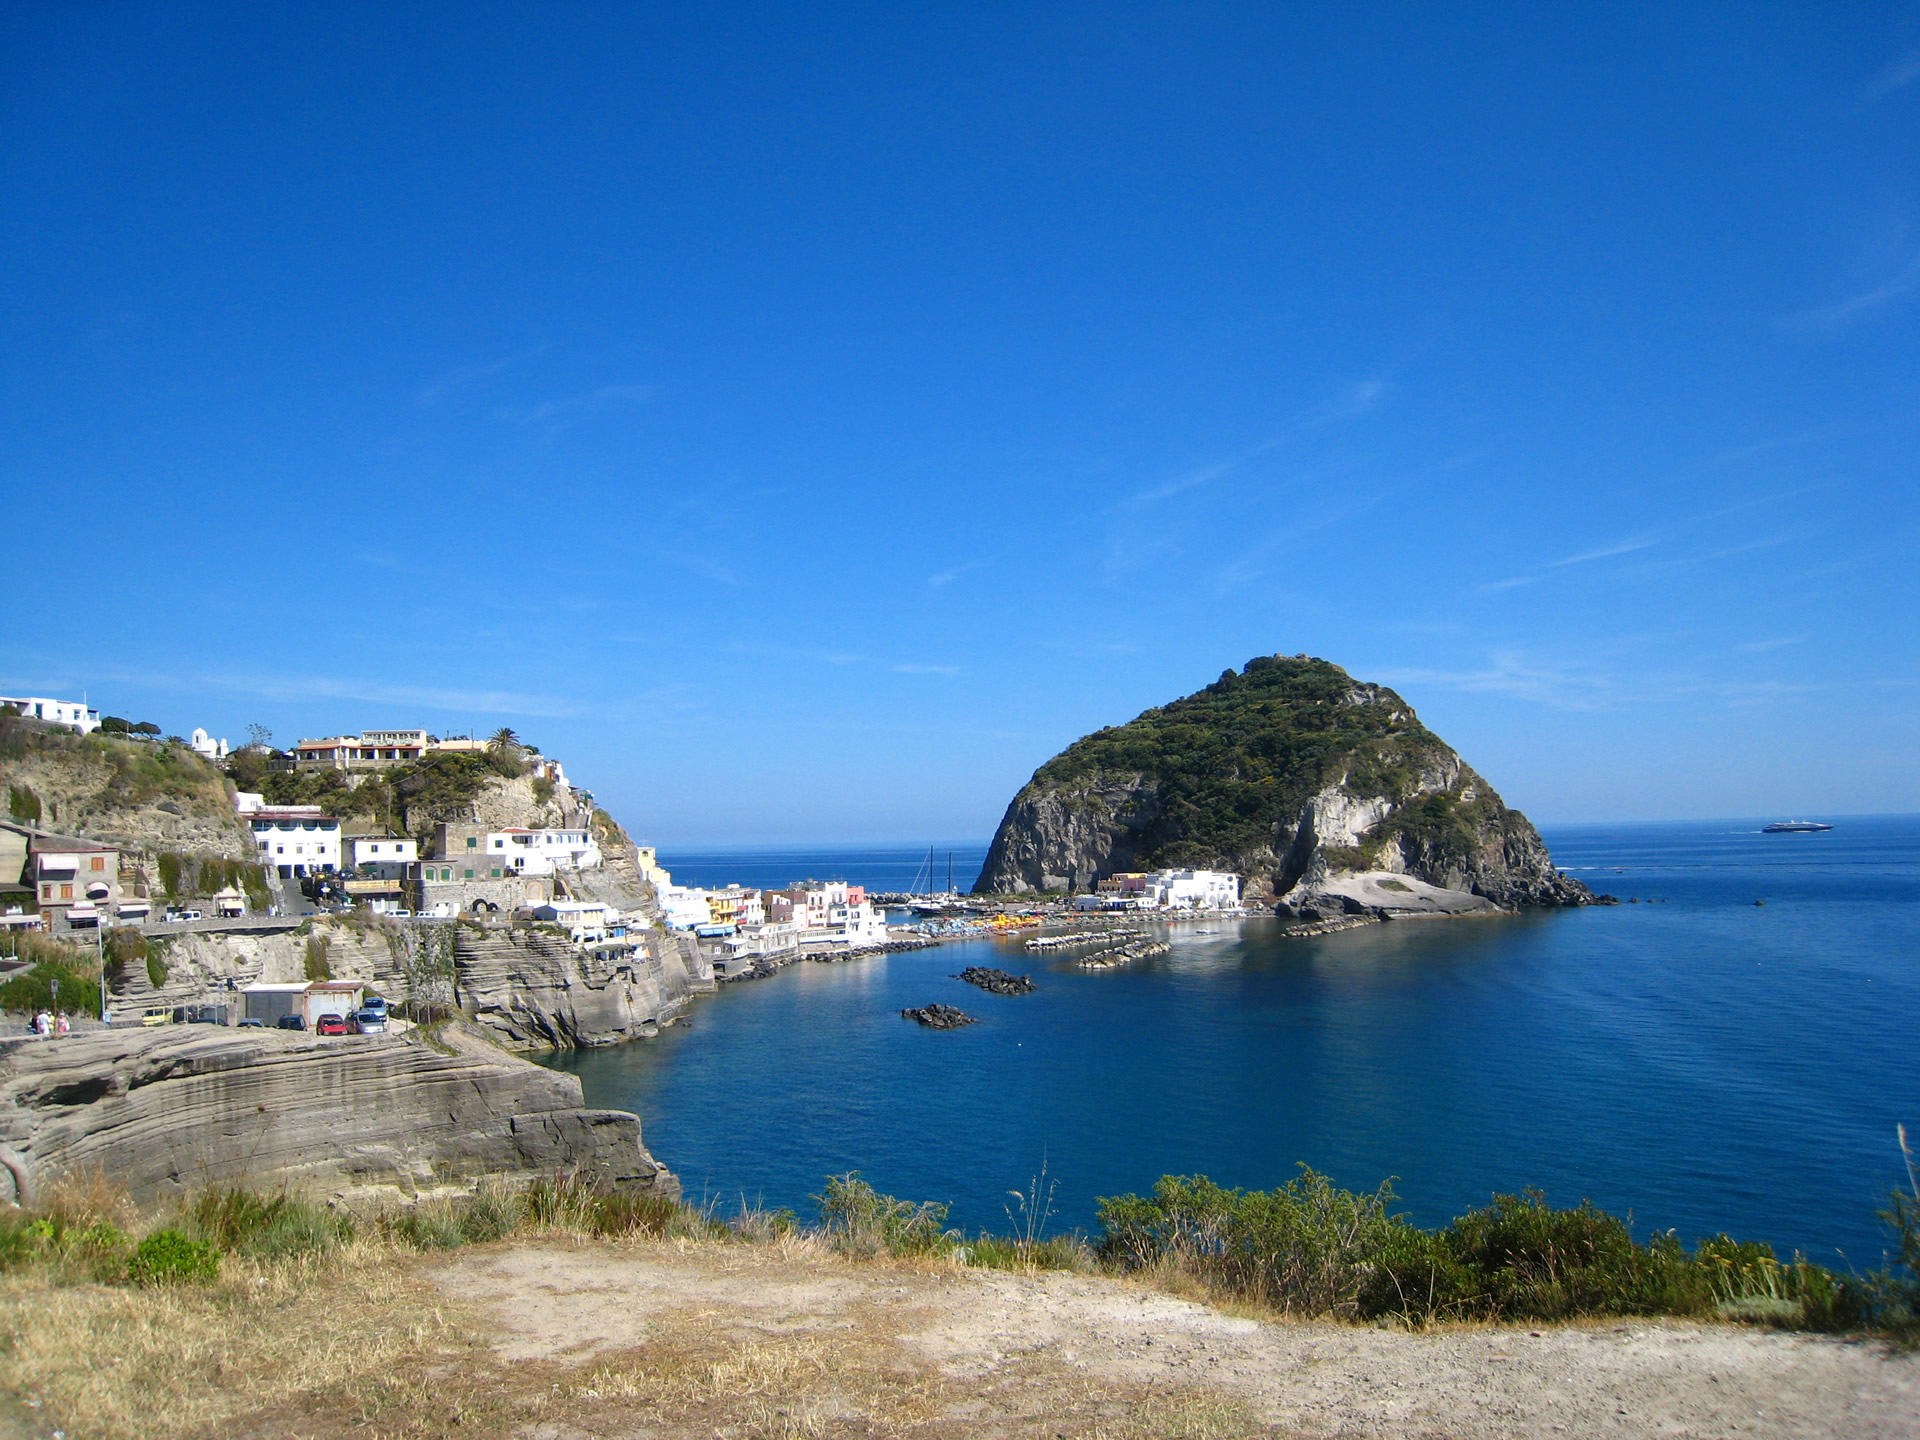 The perfect holiday: ever considered visiting Ischia?